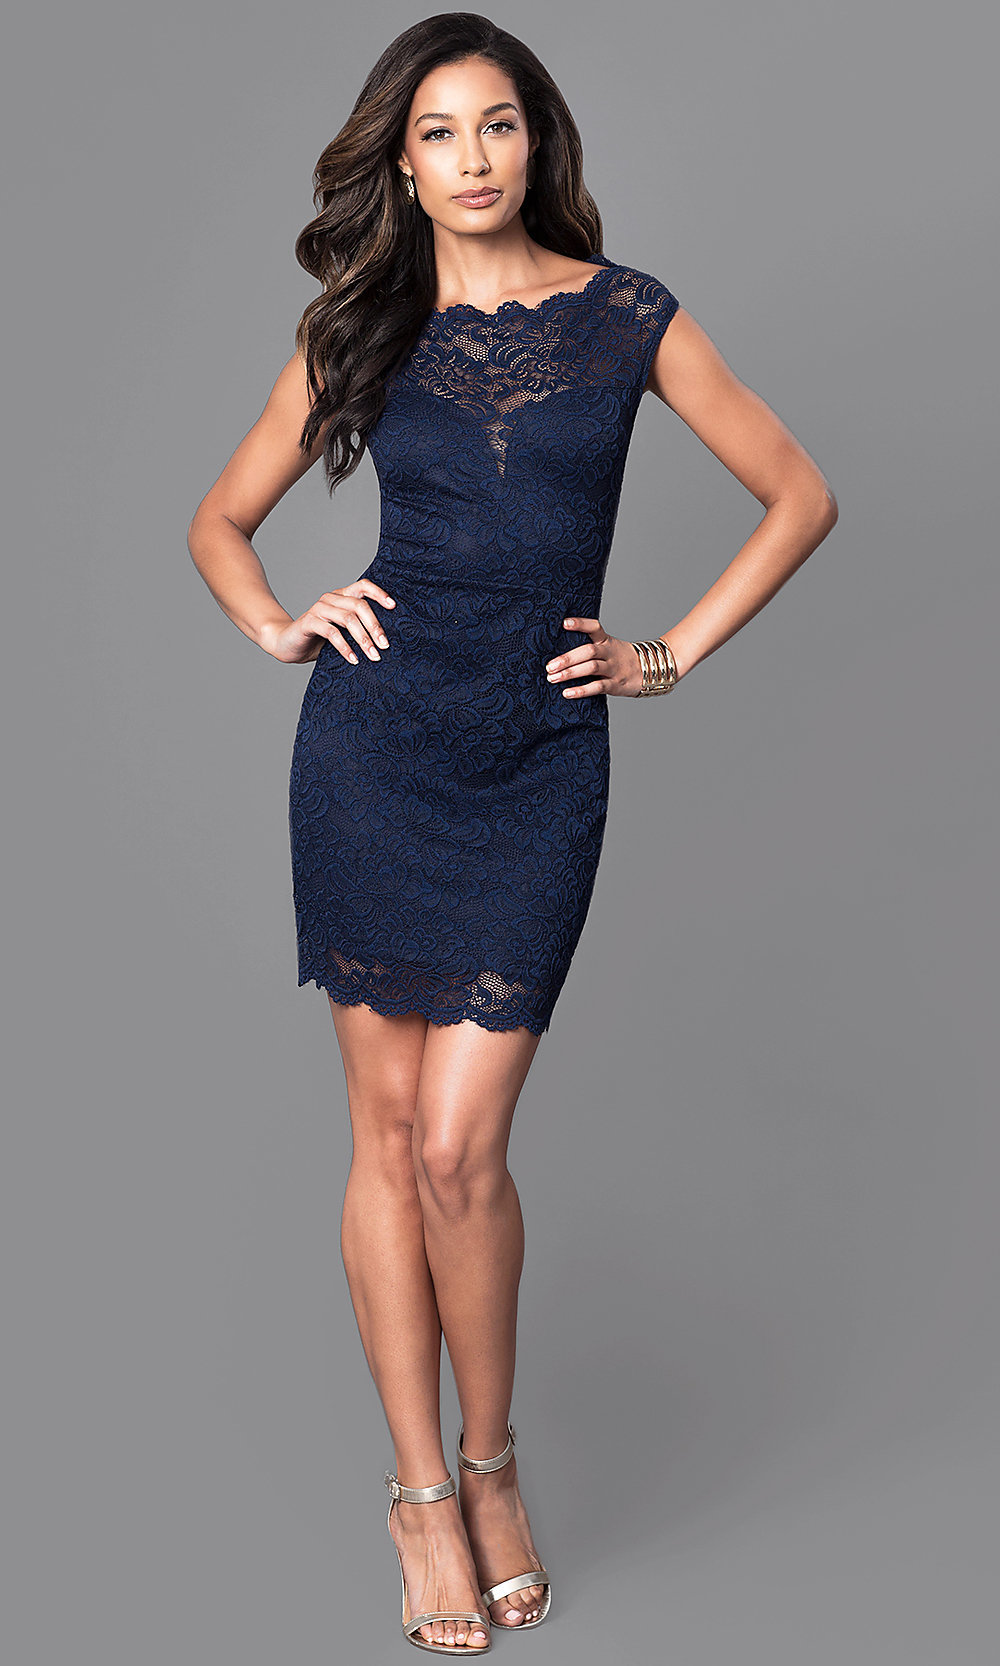 Cheap Navy Blue Lace Semi-Formal Dress - PromGirl